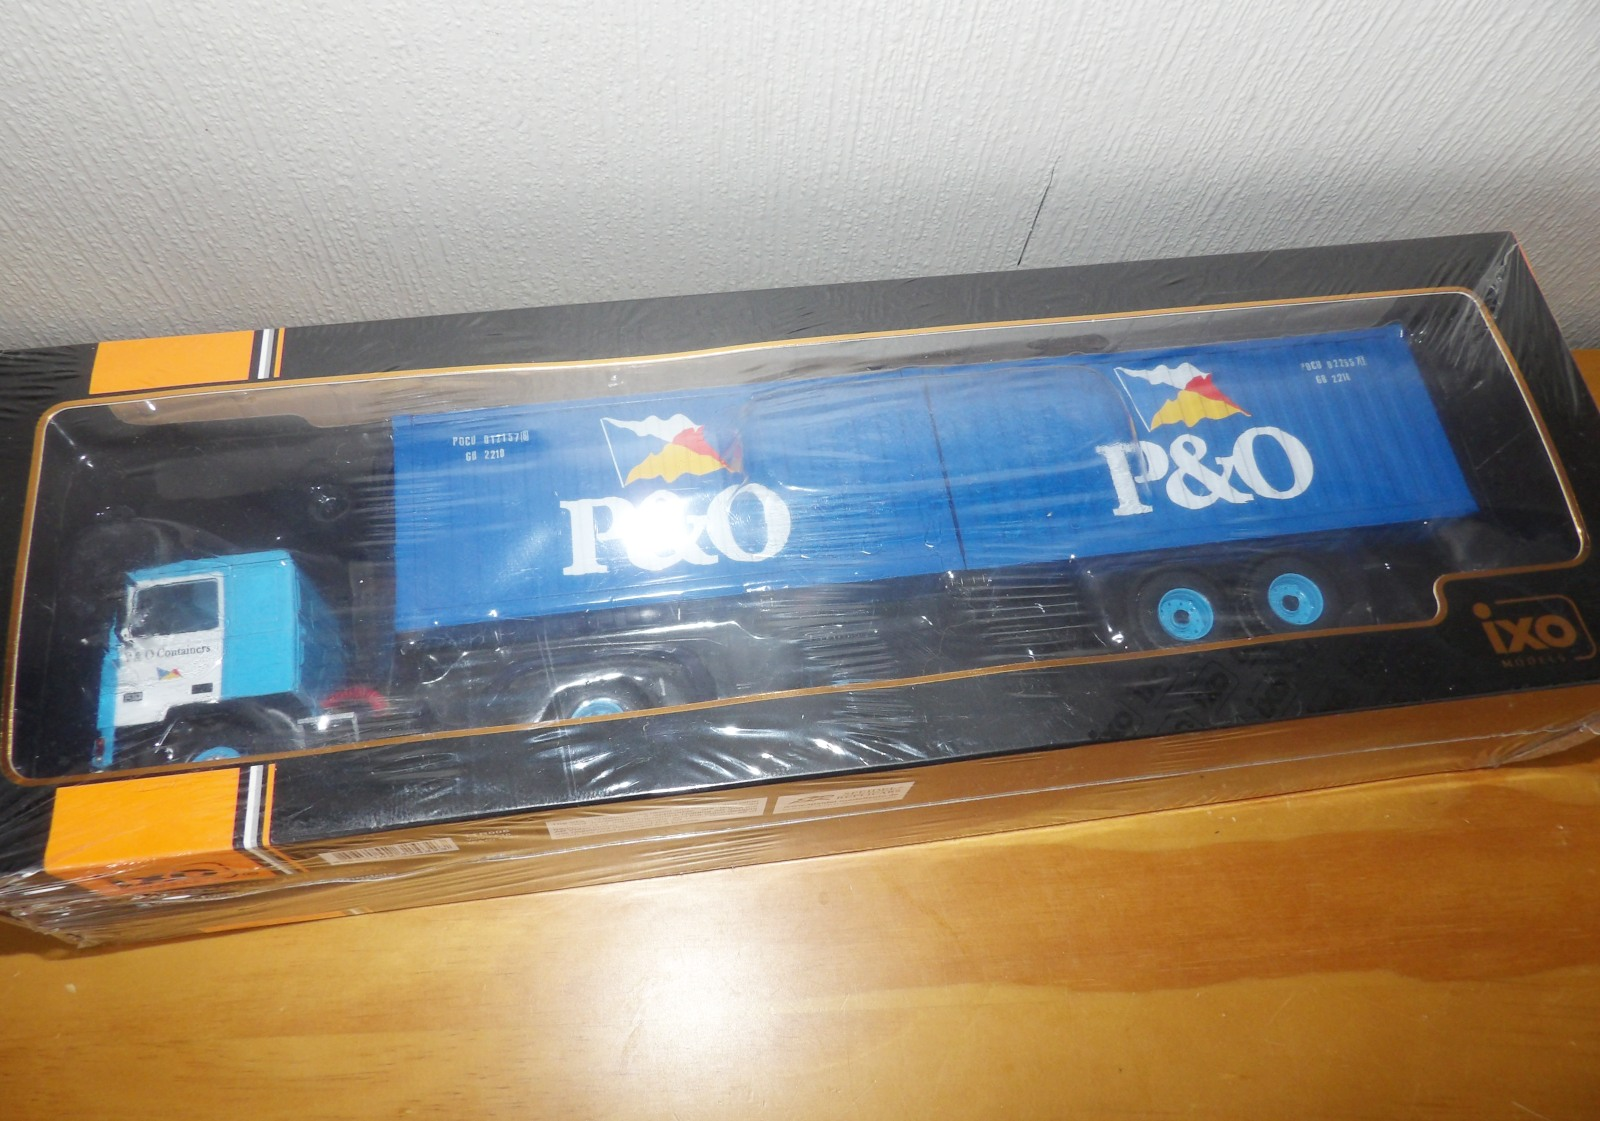 Lot 705 - 1.43 Scale IXO VOLVO F10 in P & O Shipping Livery. P&P Group 1 (£14+VAT for the first lot and £1+VAT